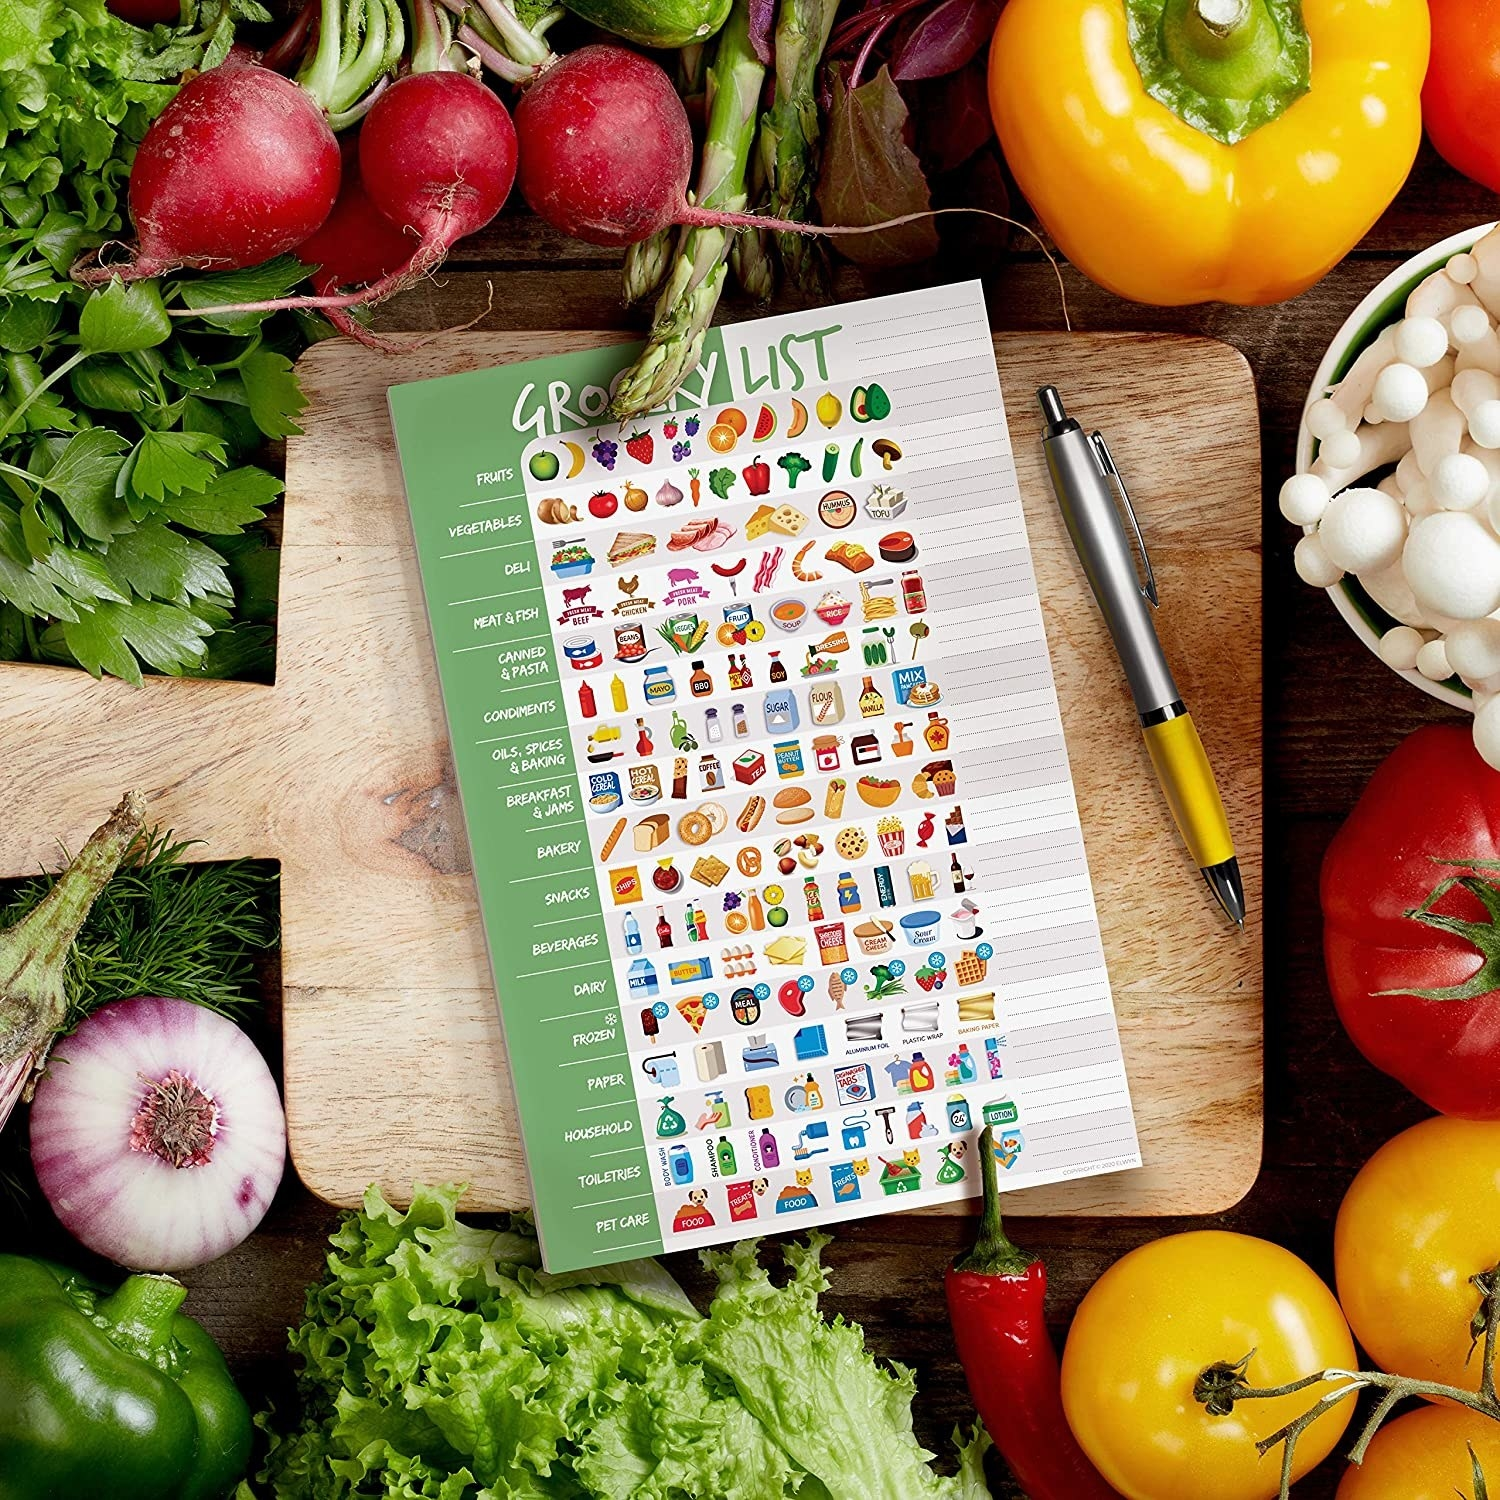 The colorful pad with food icons arranged in categories from fruits to pet care to deli to snacks